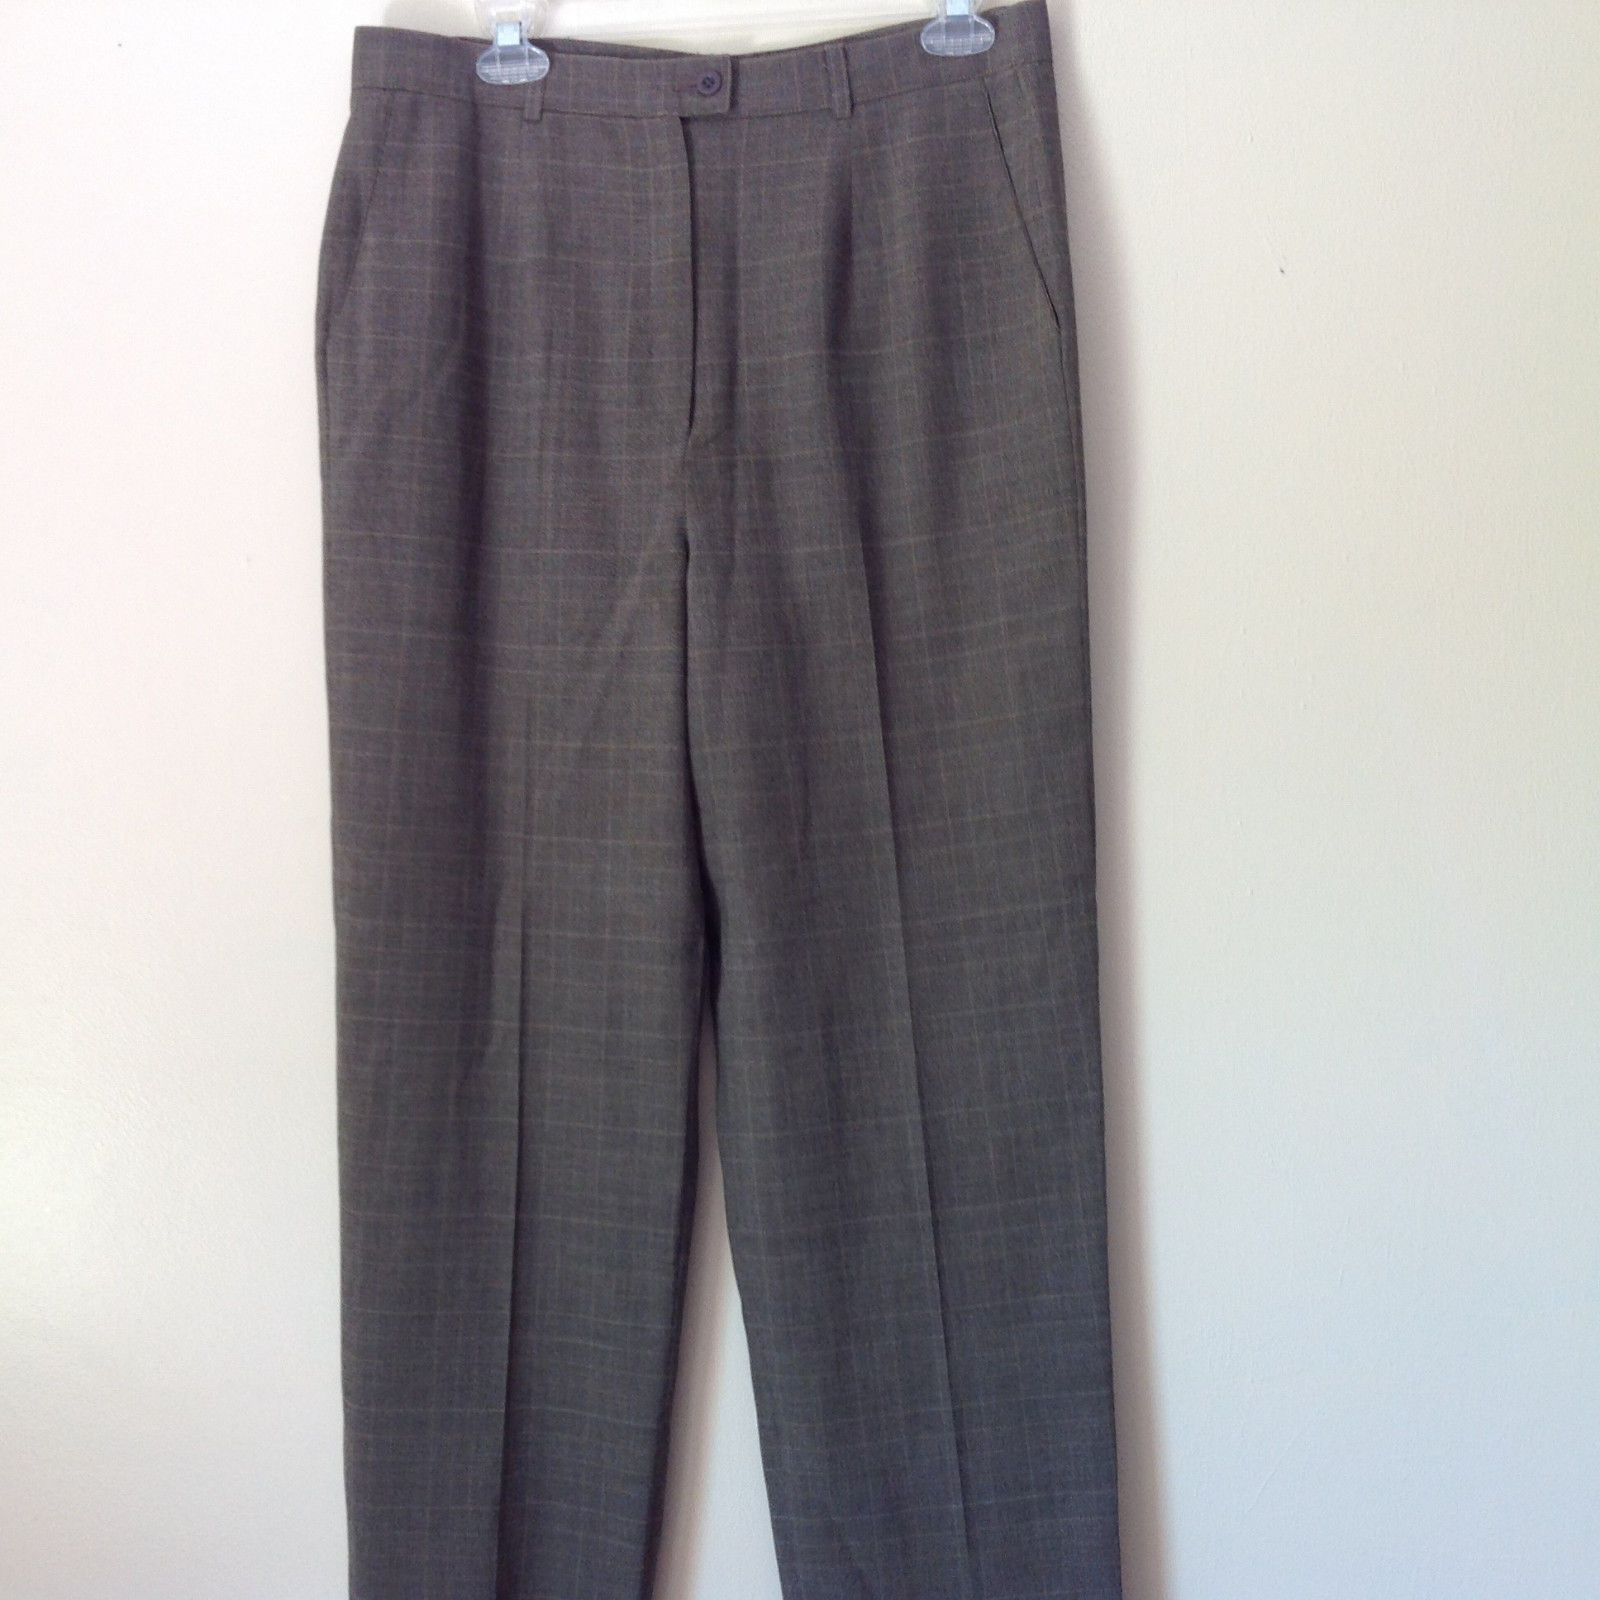 Zanella Plaid Dress Pants Brown Gray Made in Italy Size 10 Zipper Button Closure